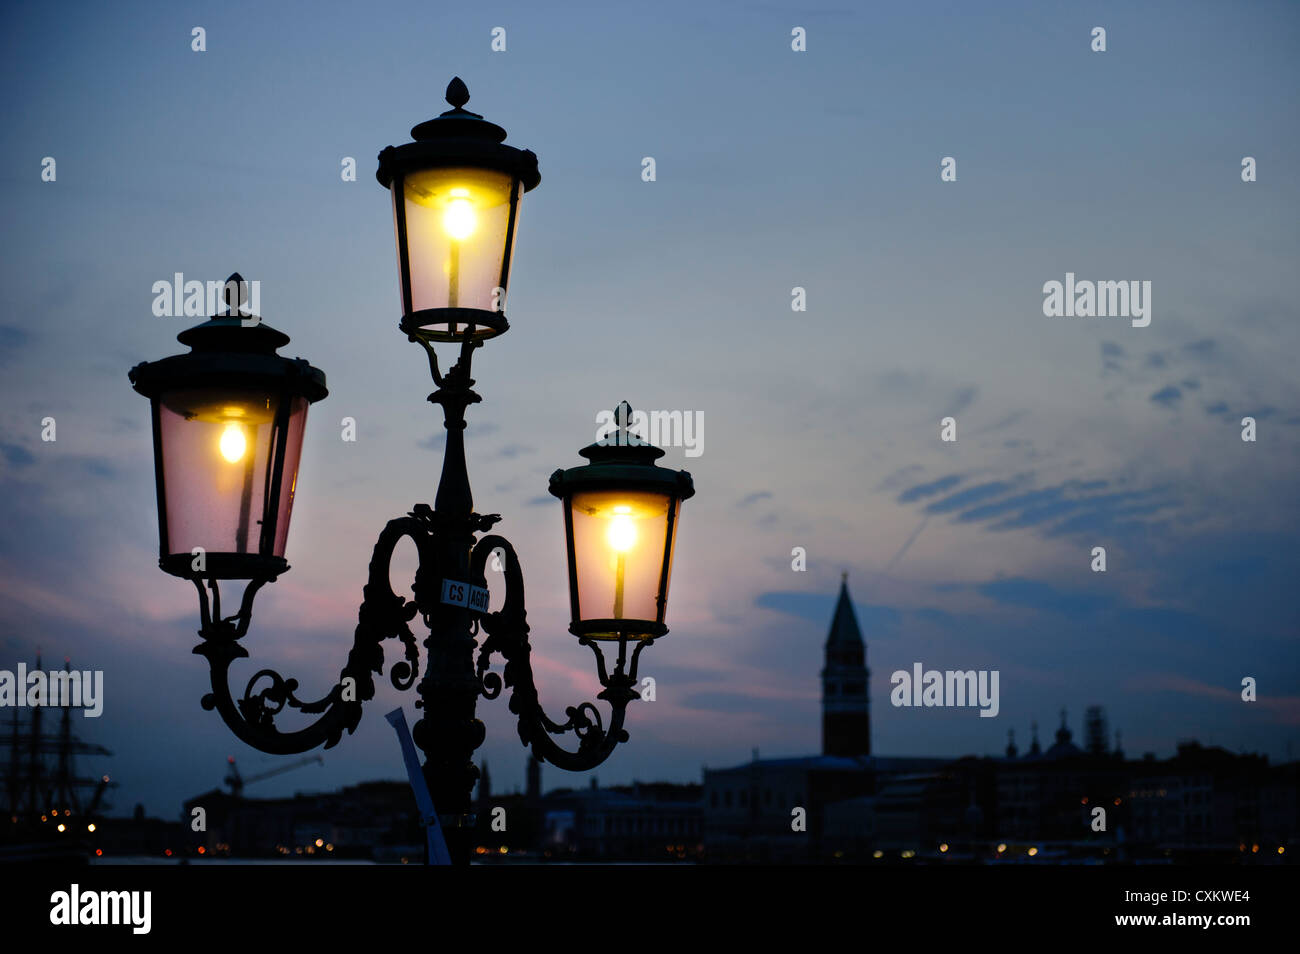 street lamp venice italy stock photo 50838876 alamy